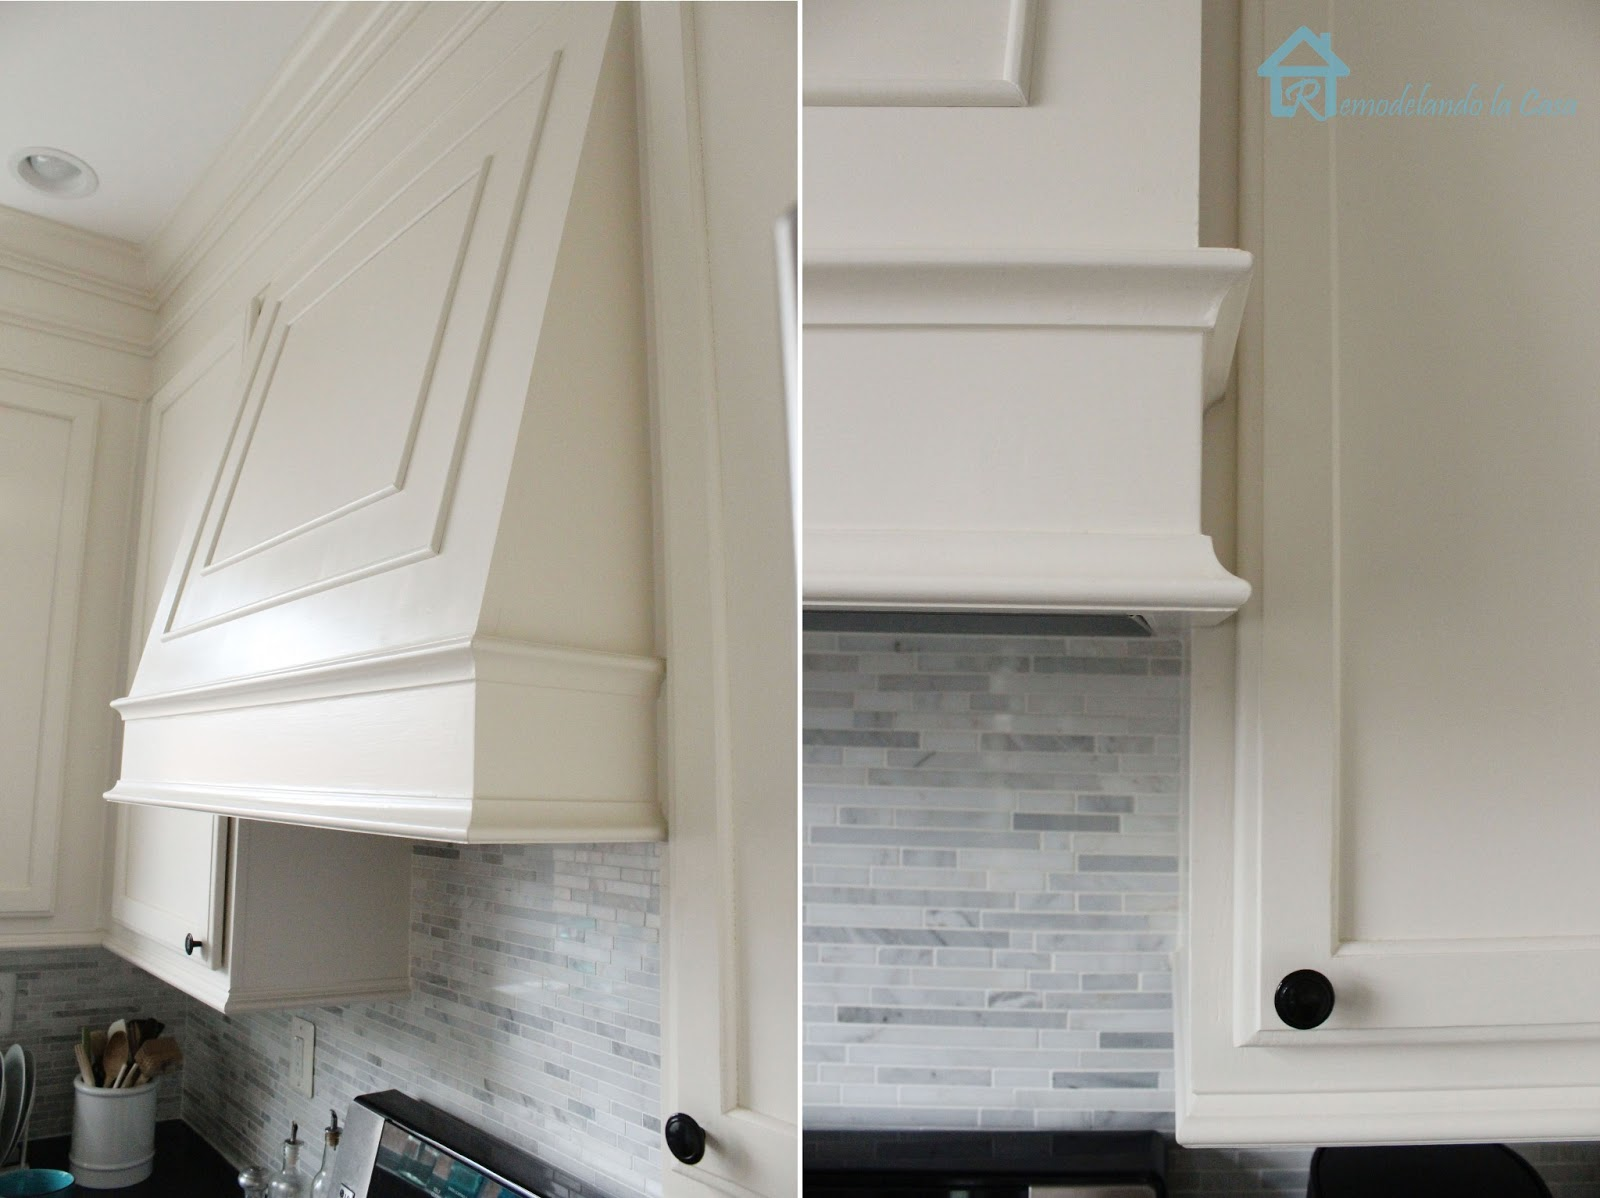 range hood cover options for my kitchen